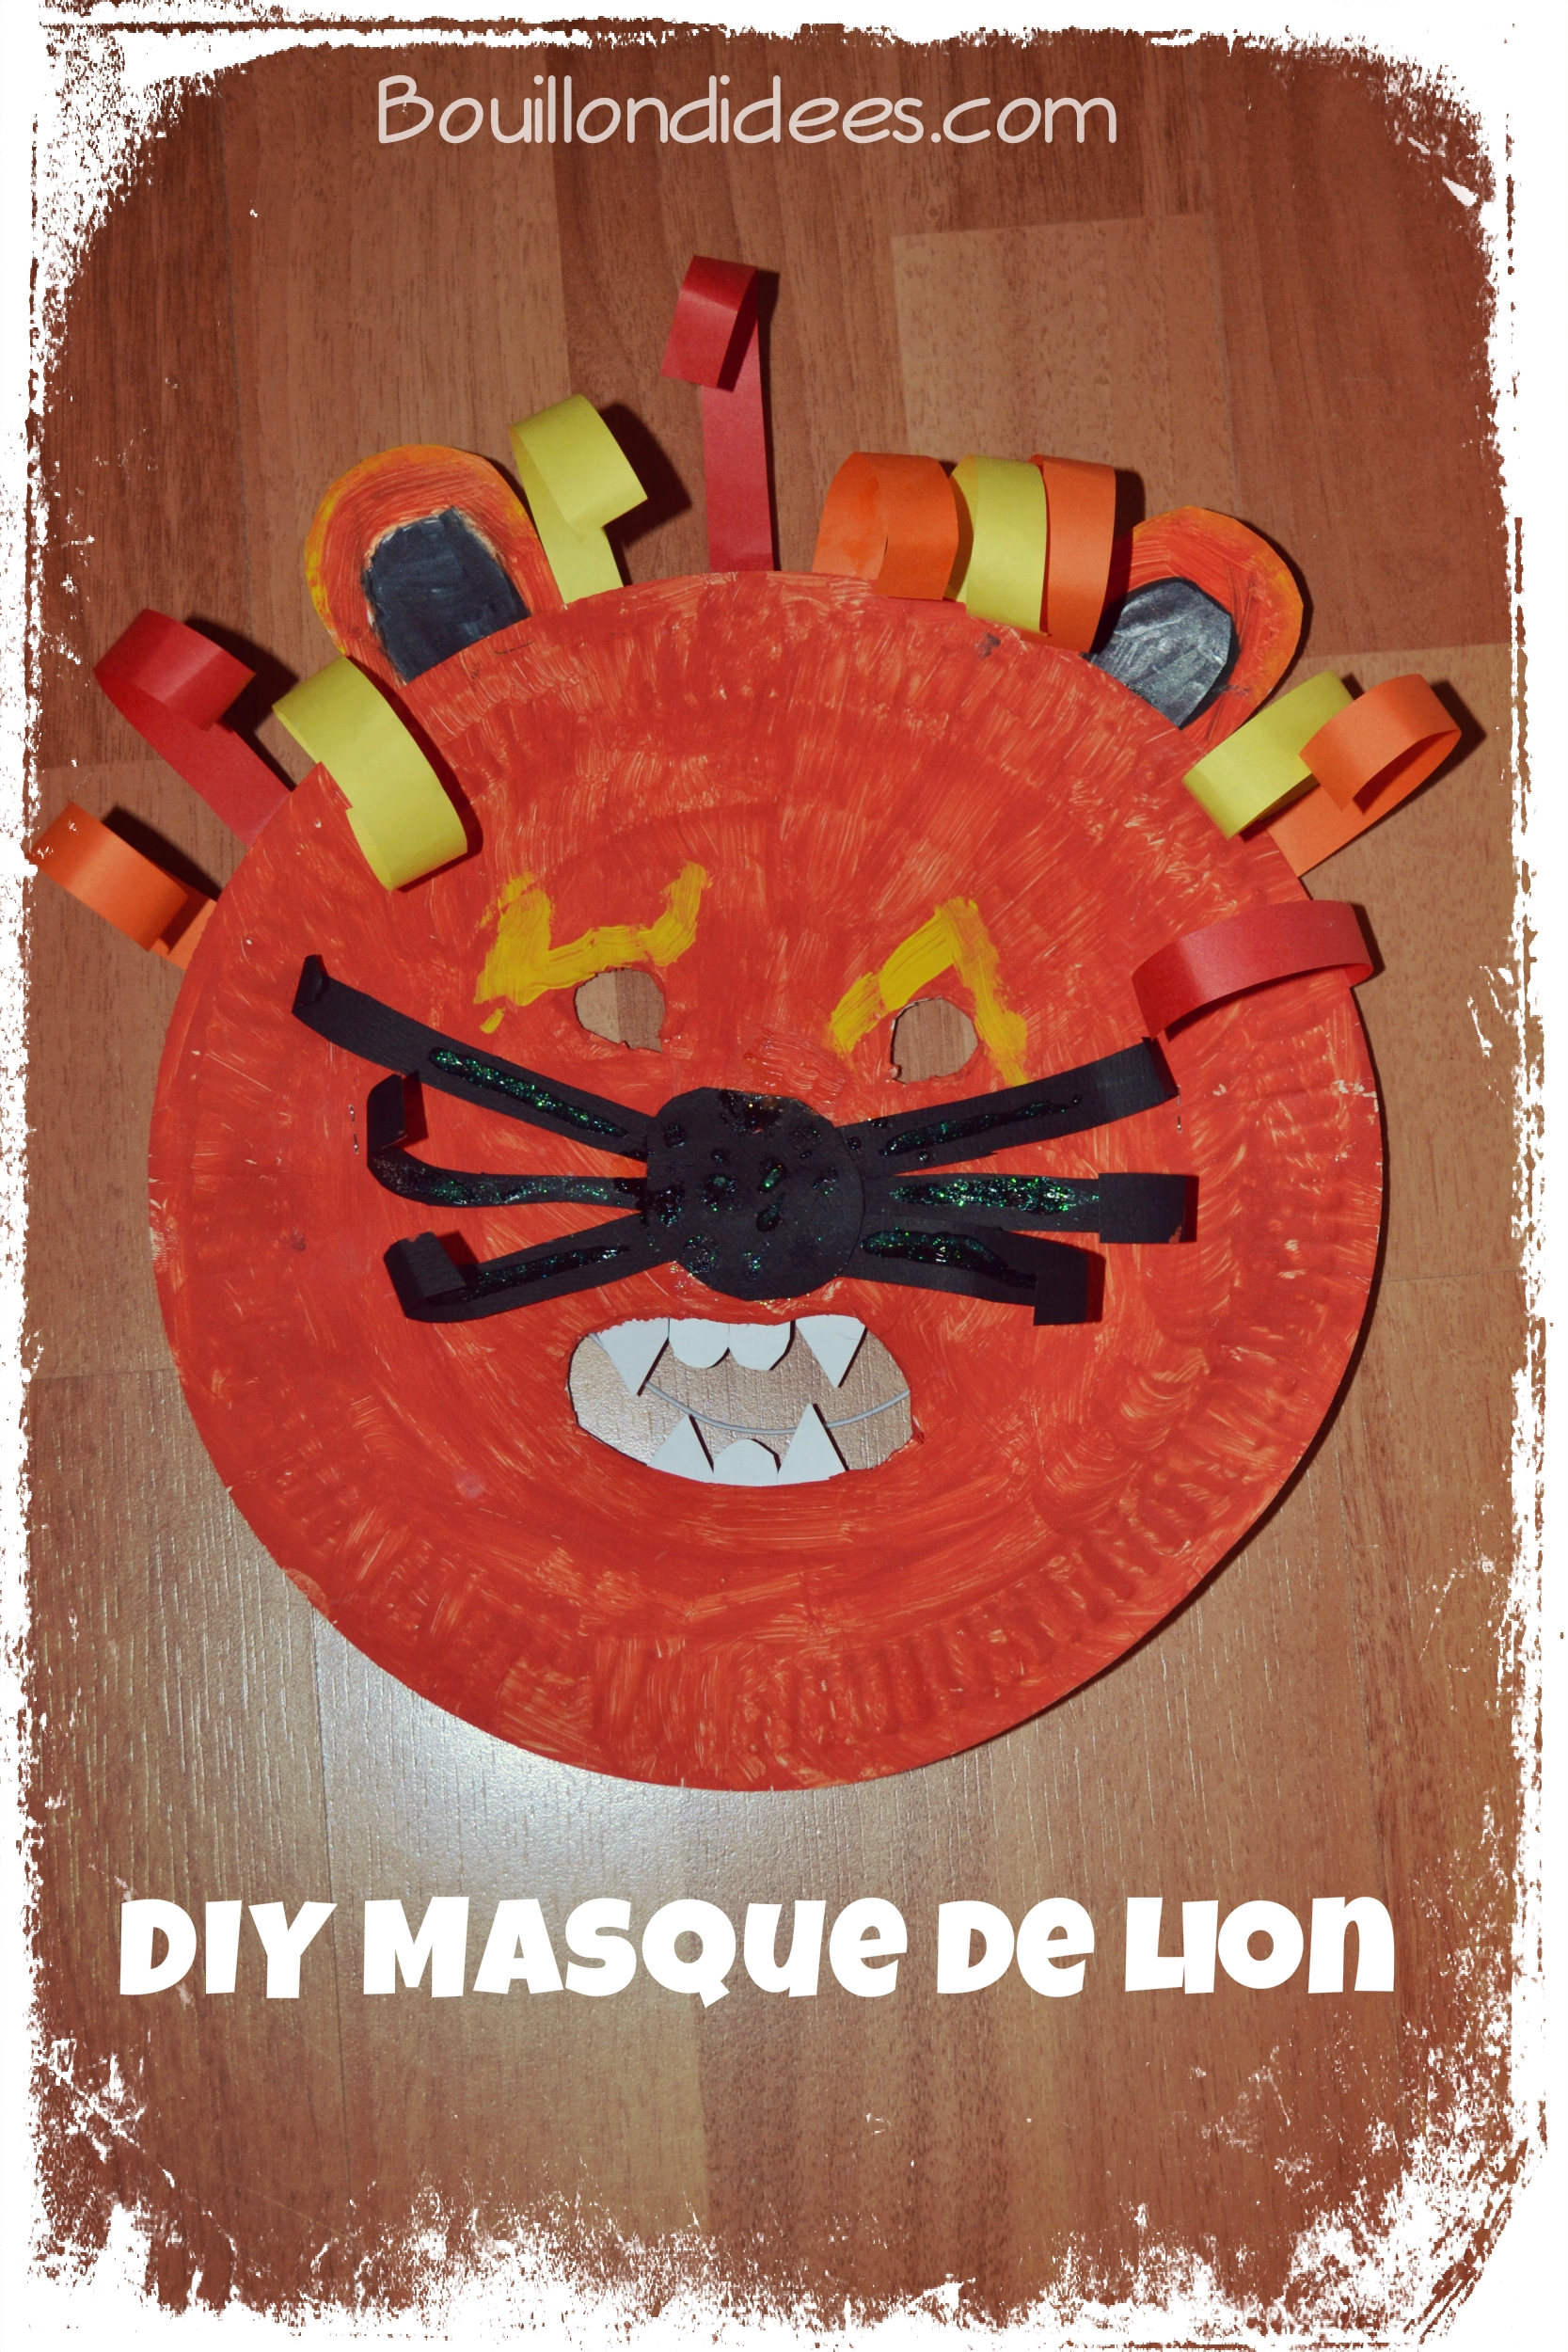 diy masque lion carn - Masque Lion